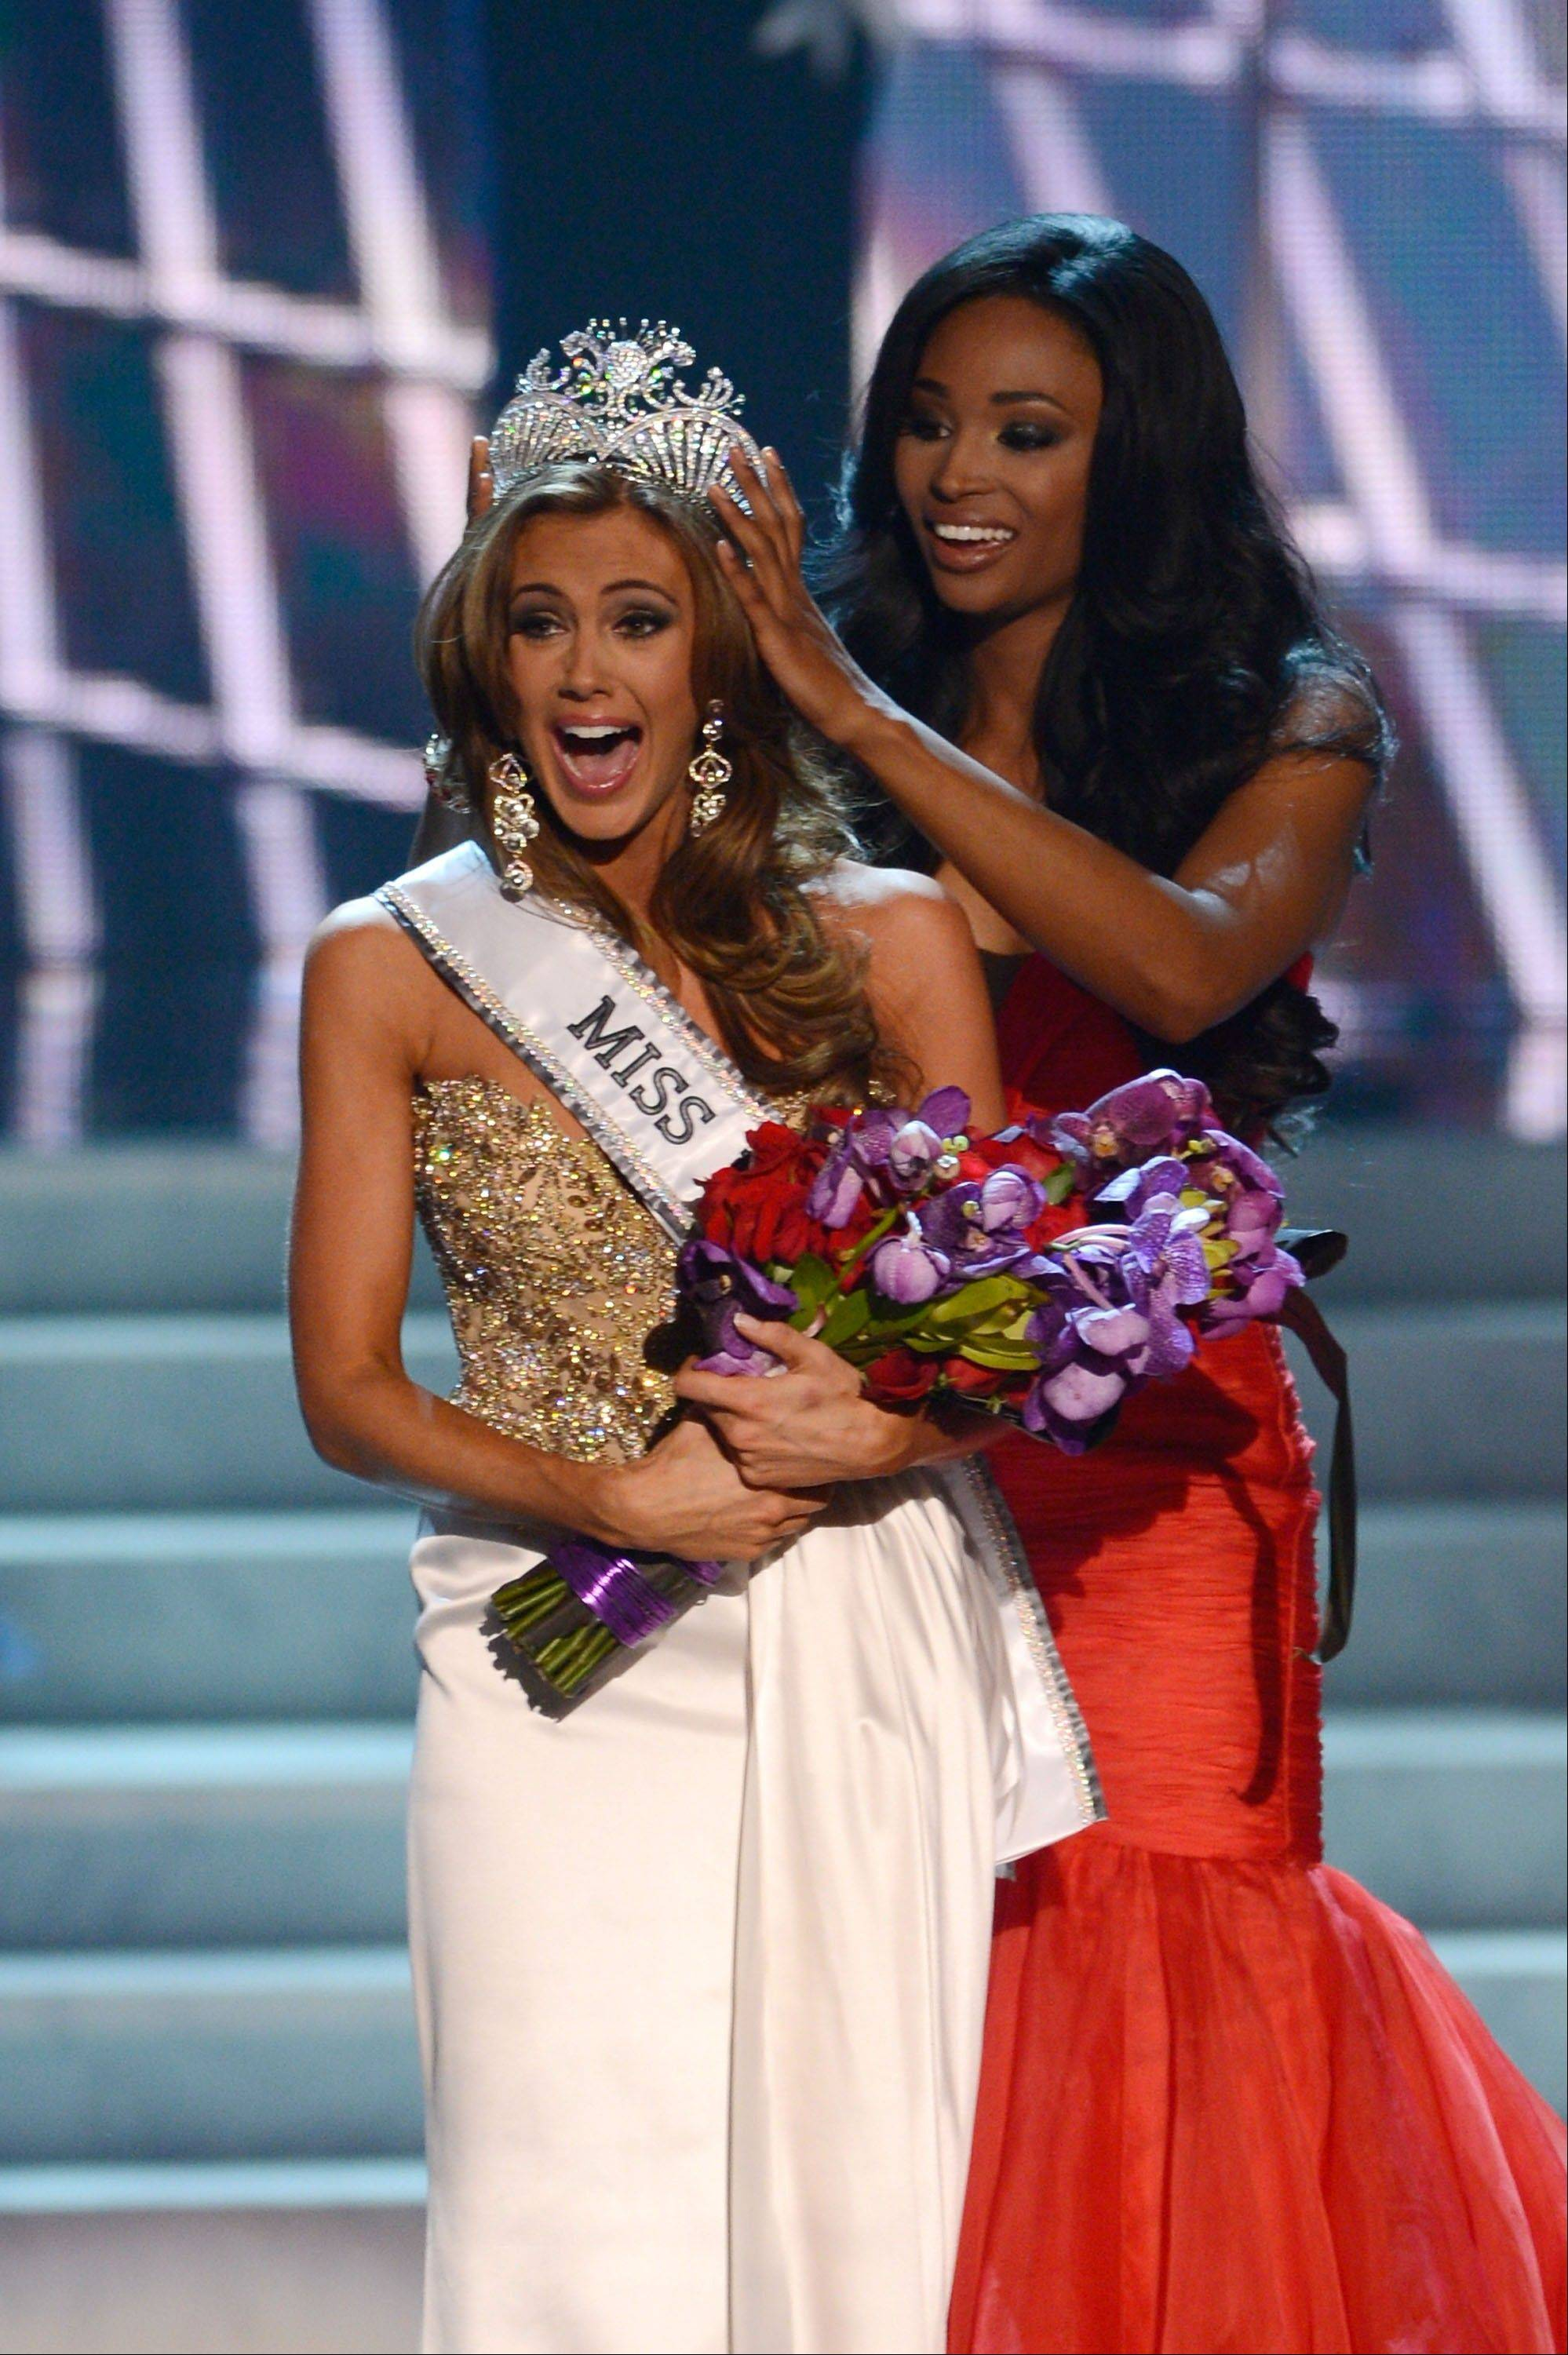 Miss Connecticut Erin Brady is crowned the winner of the Miss USA 2013 pageant by Nana Meriwether, Sunday, June 16, 2013, in Las Vegas.